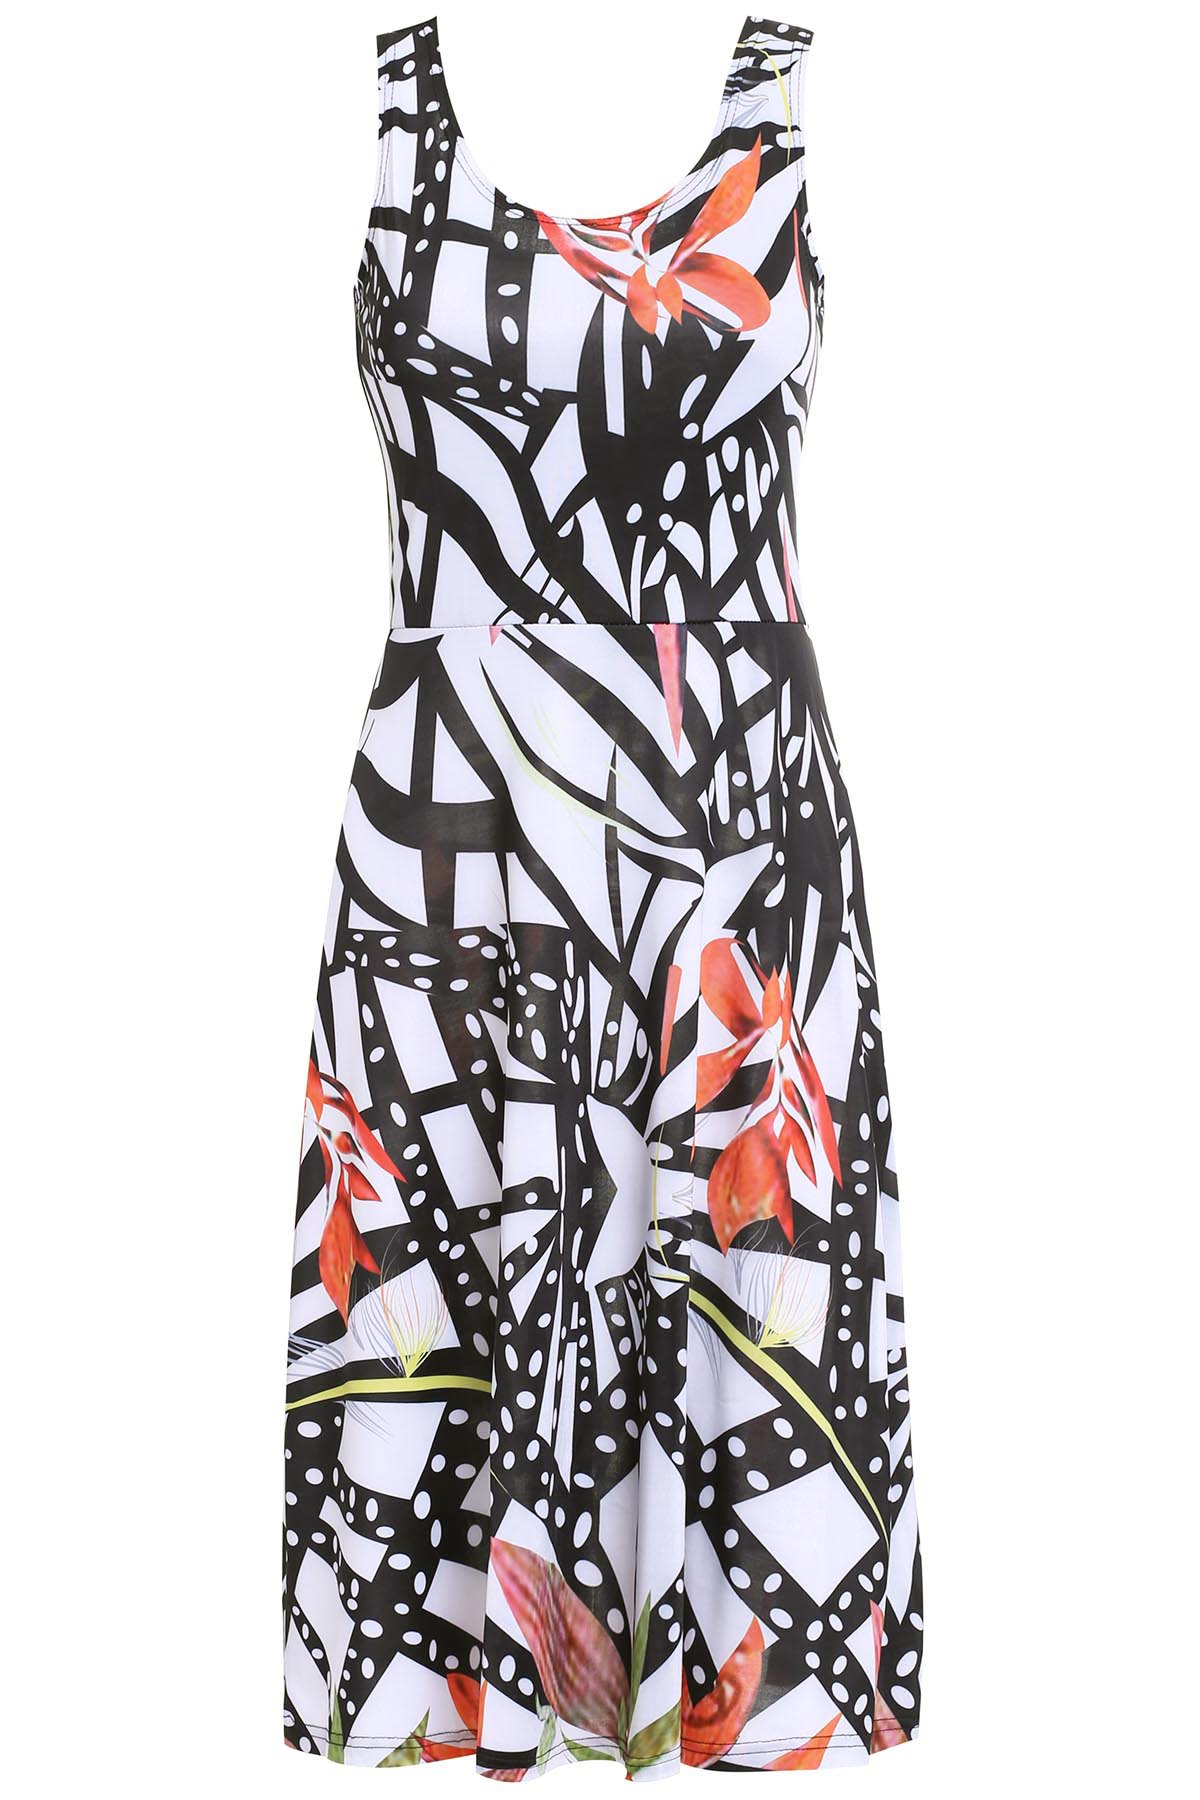 Trendy Scoop Neck Belted Print Tank Dress For Women - COLORMIX L